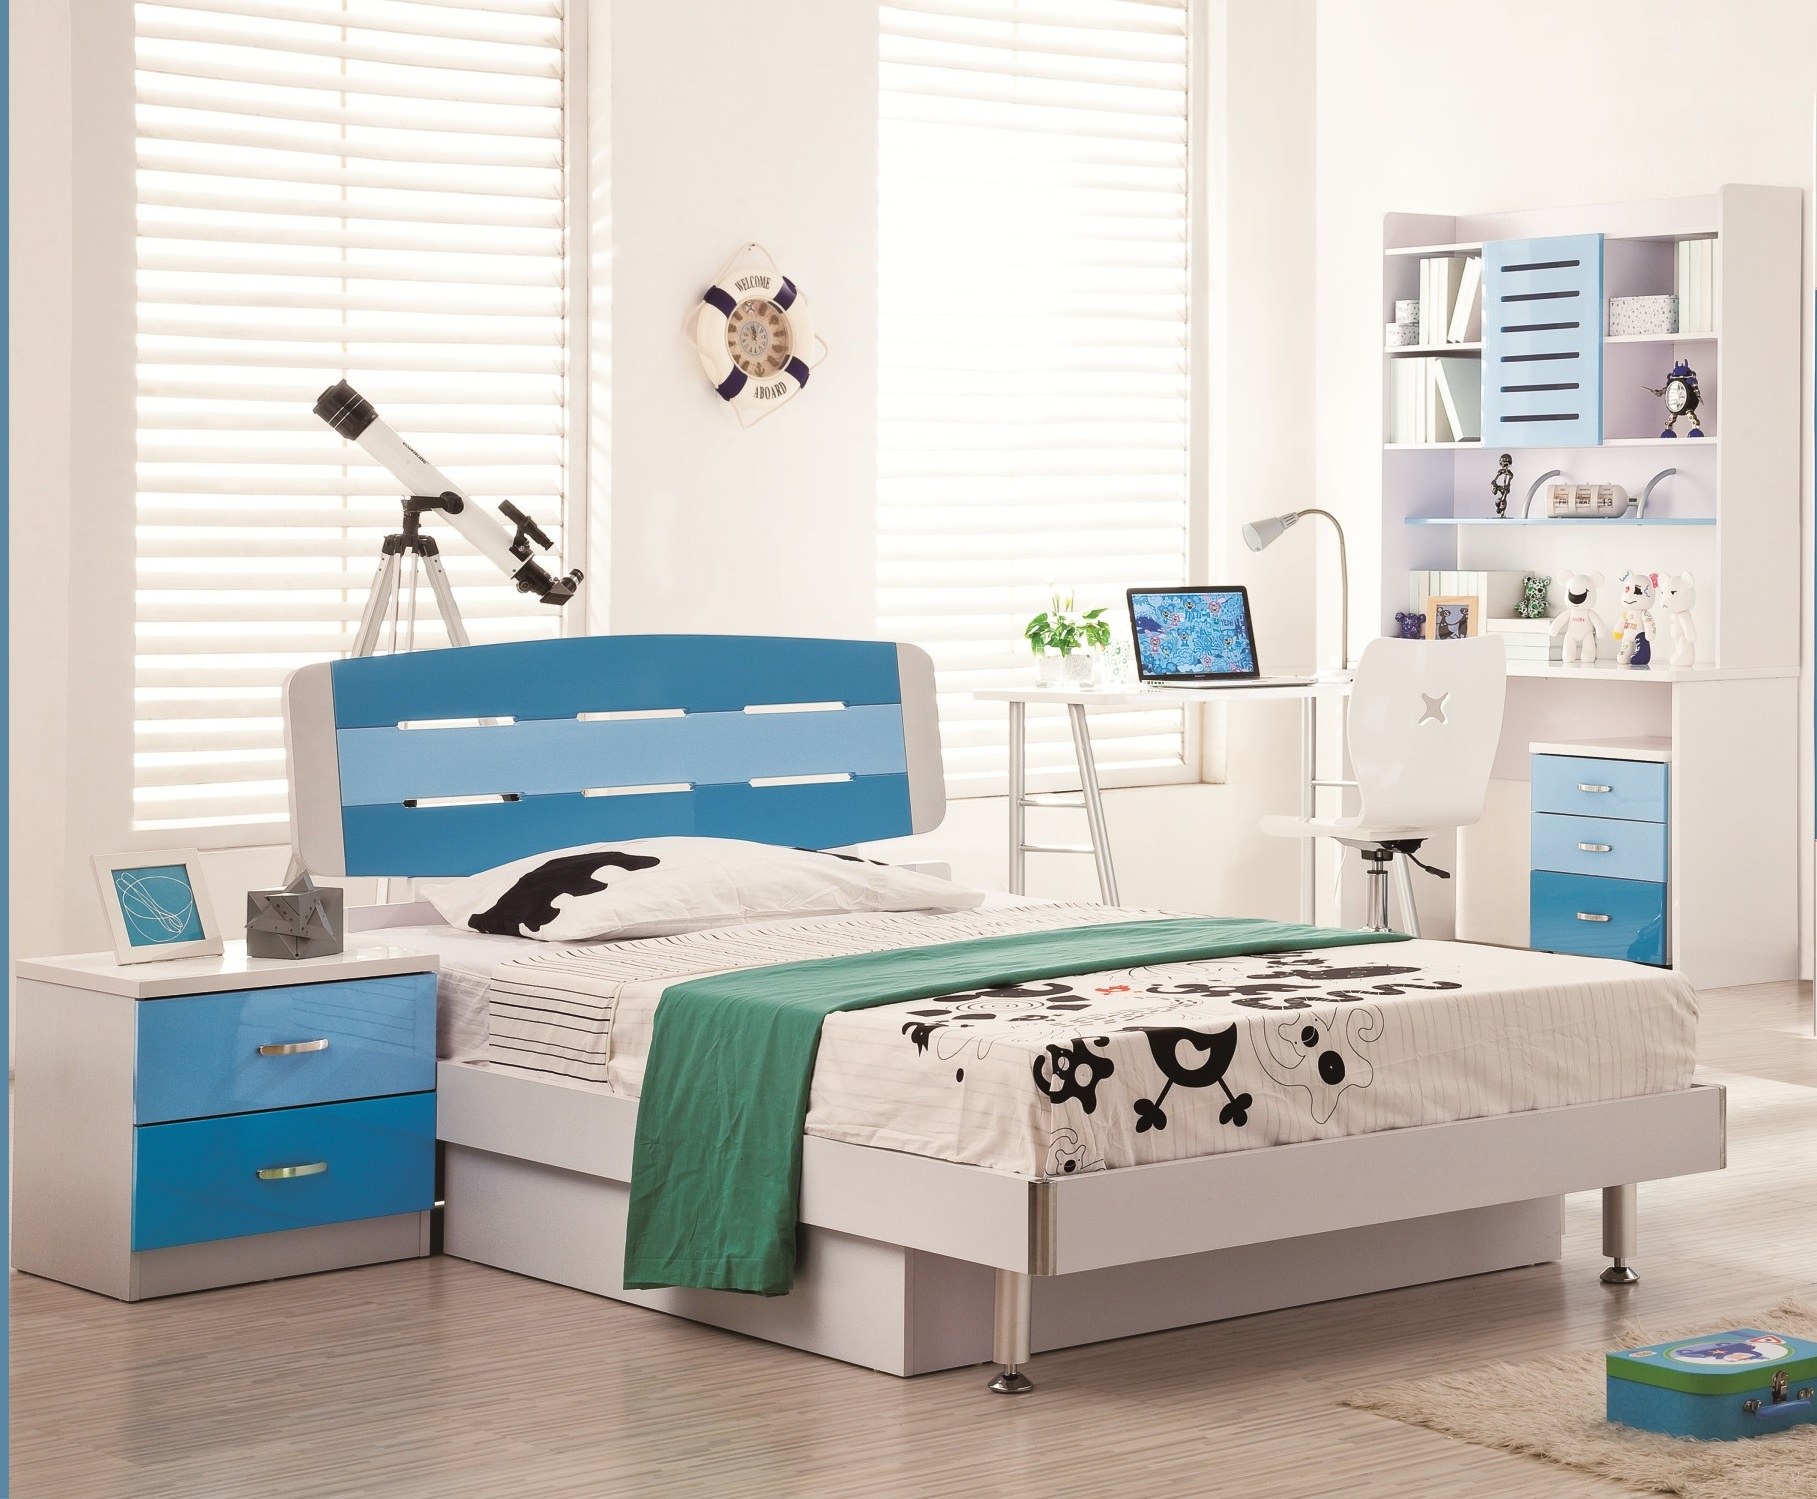 Kids kouch kids furniture online kids bedroom furniture for Fevicol bed furniture design